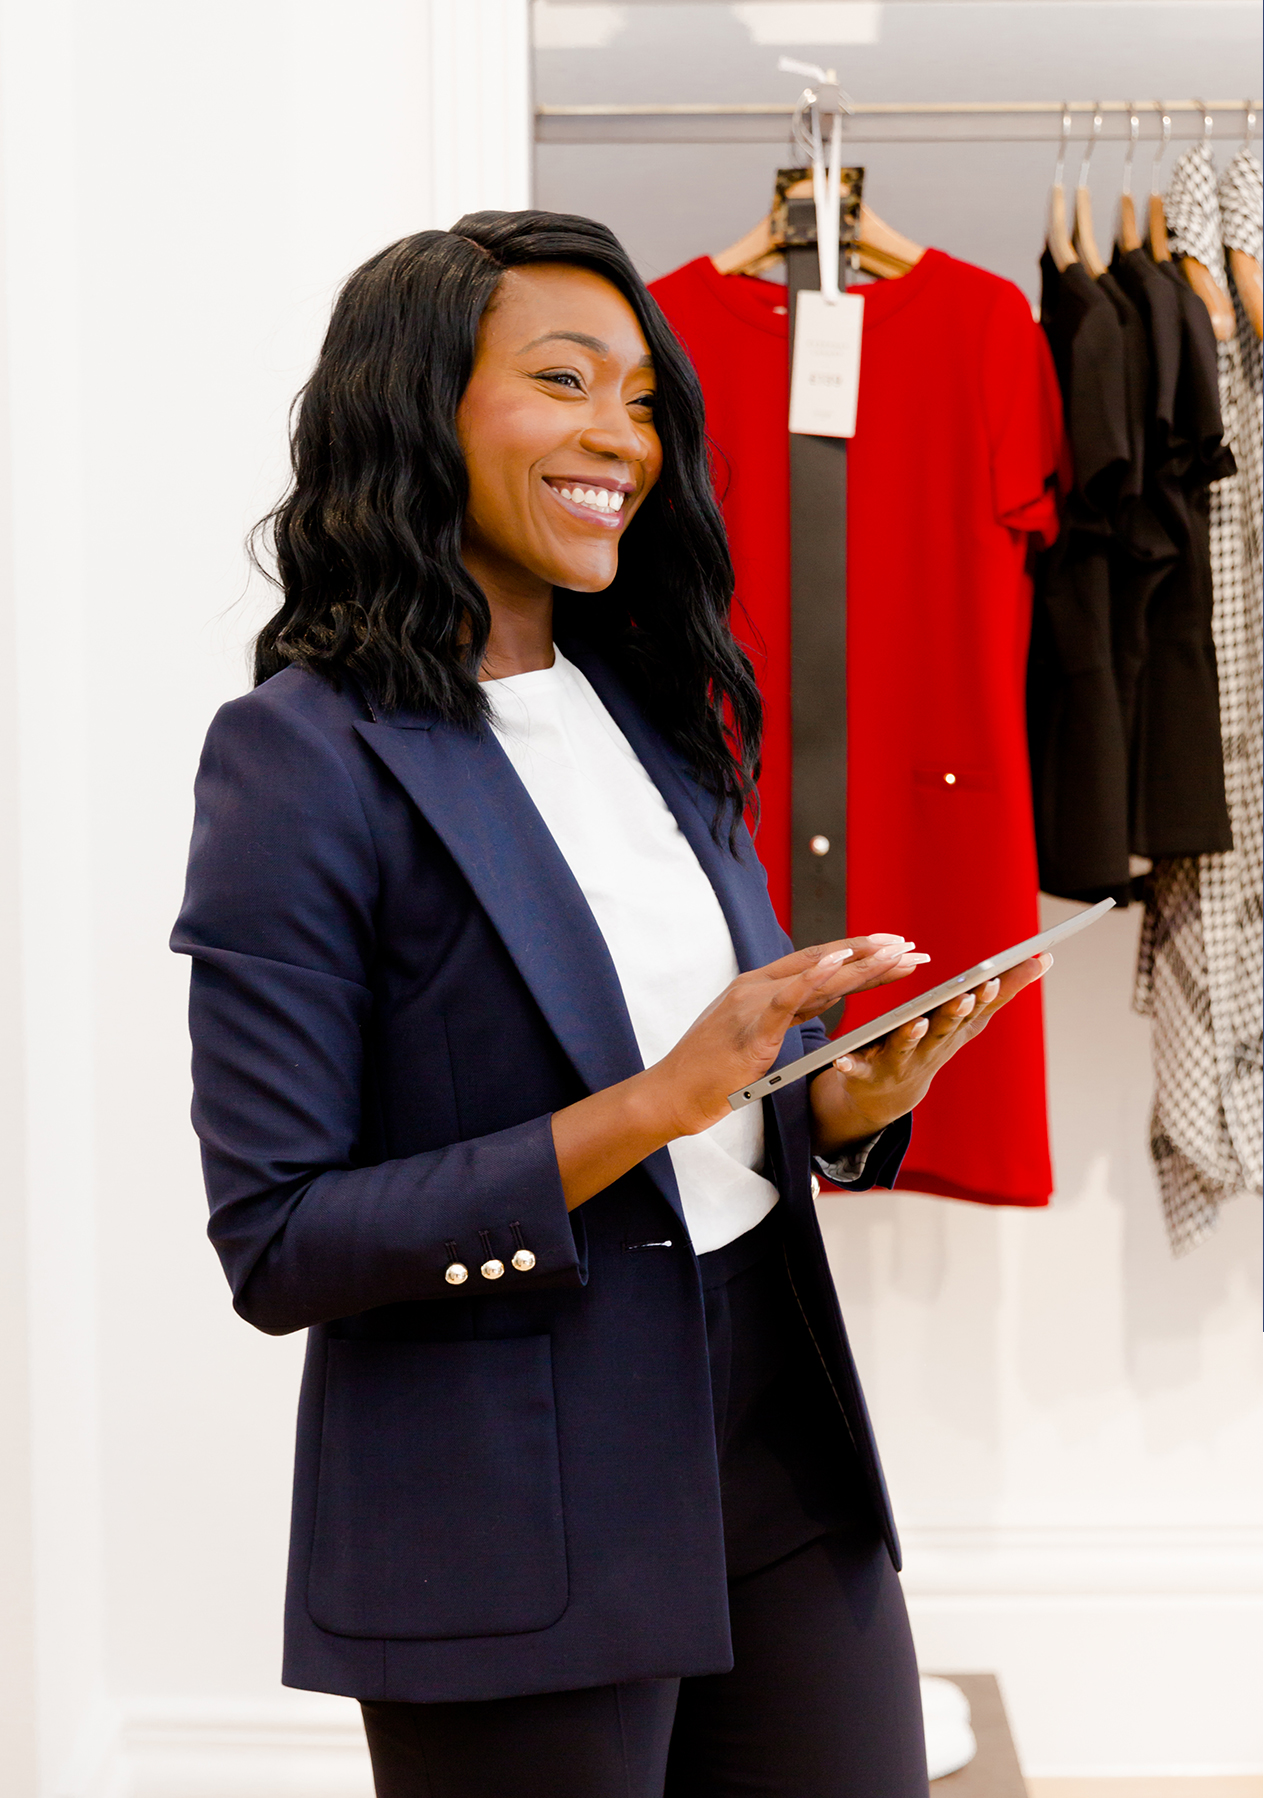 Store Manager, Tayo Olode-Okuta, photographed holding a digital tablet in the St. Paul's store.